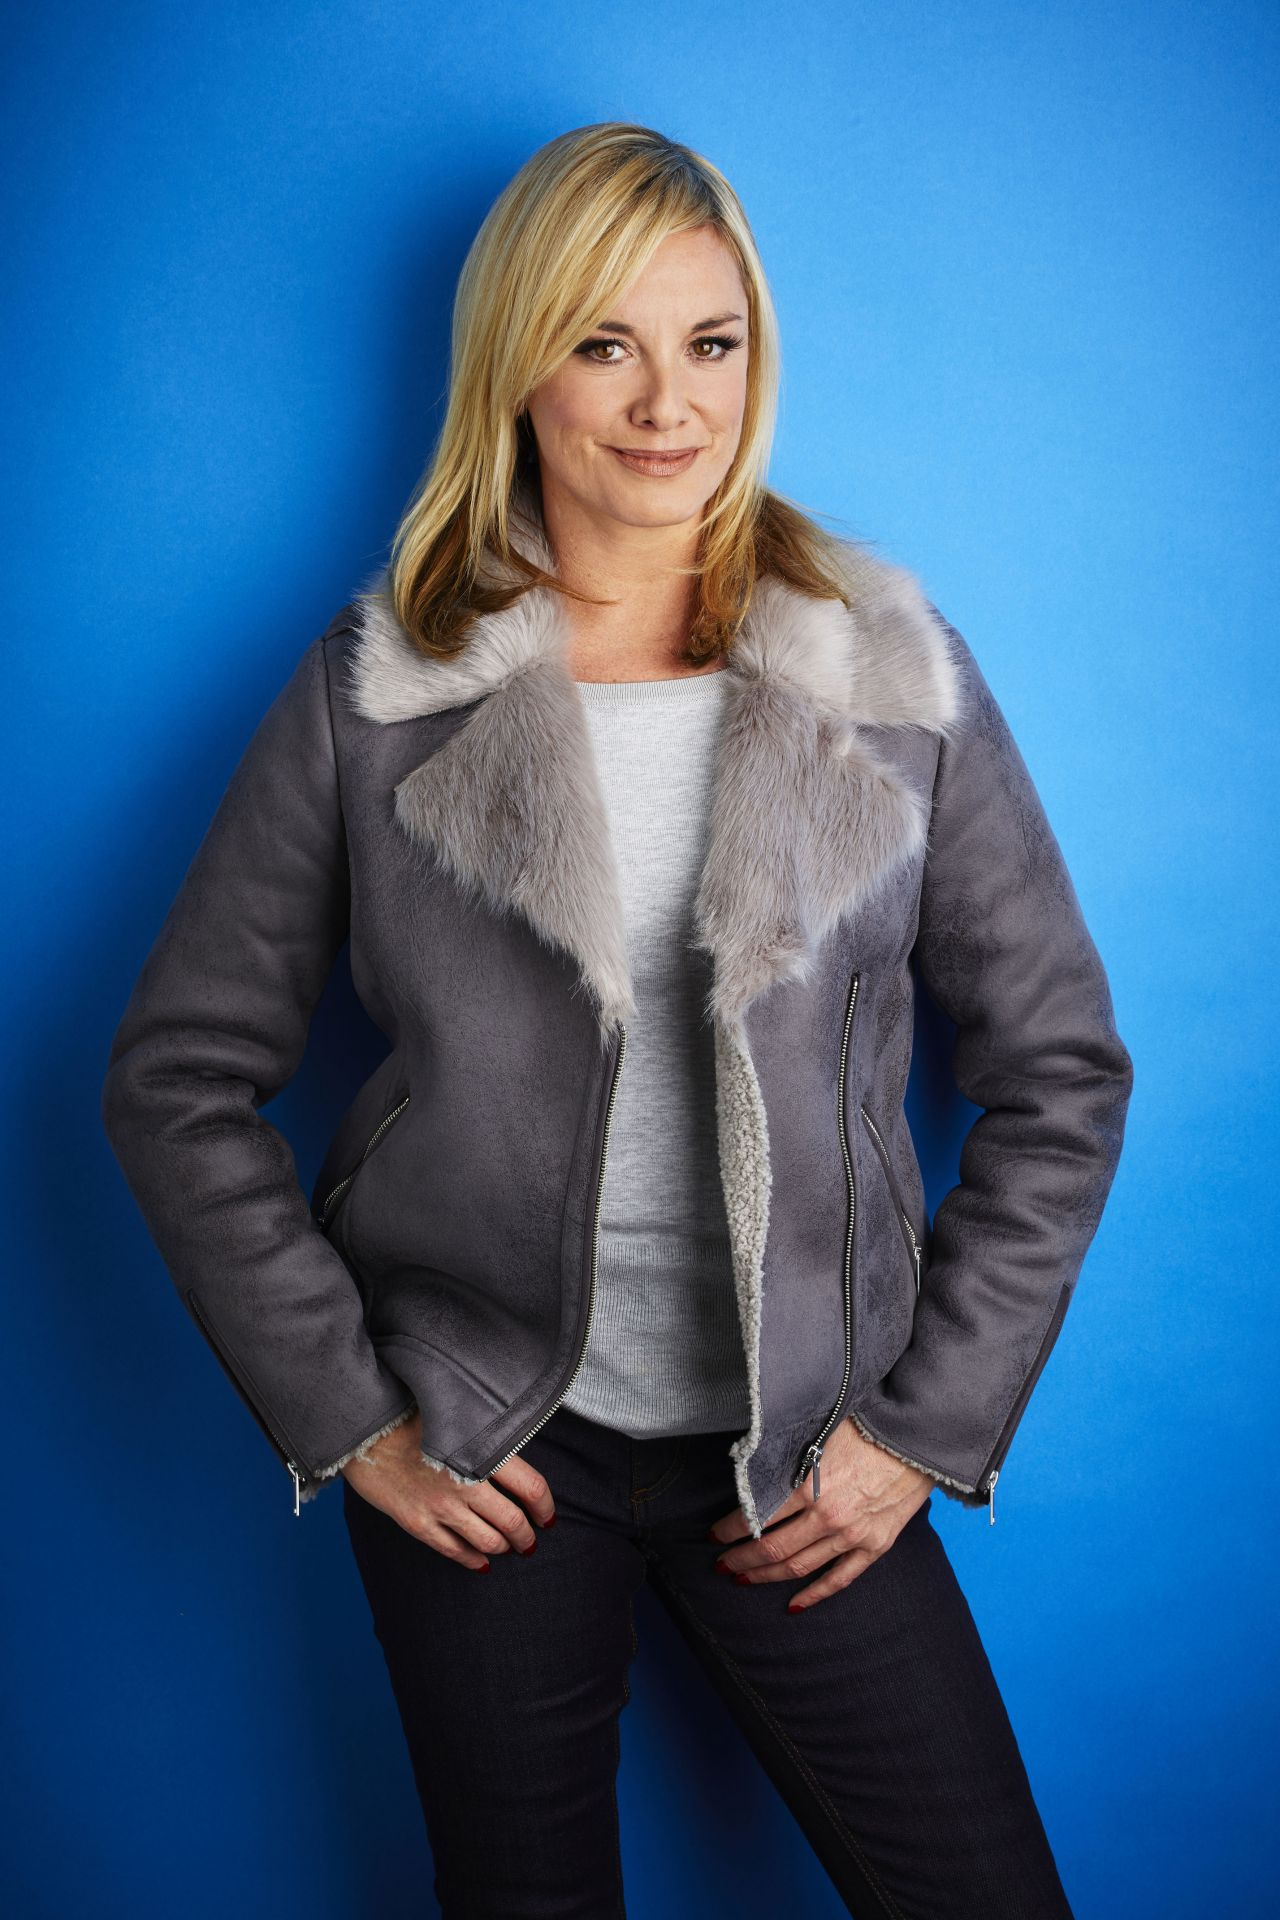 tamzin outhwaite - photo #26